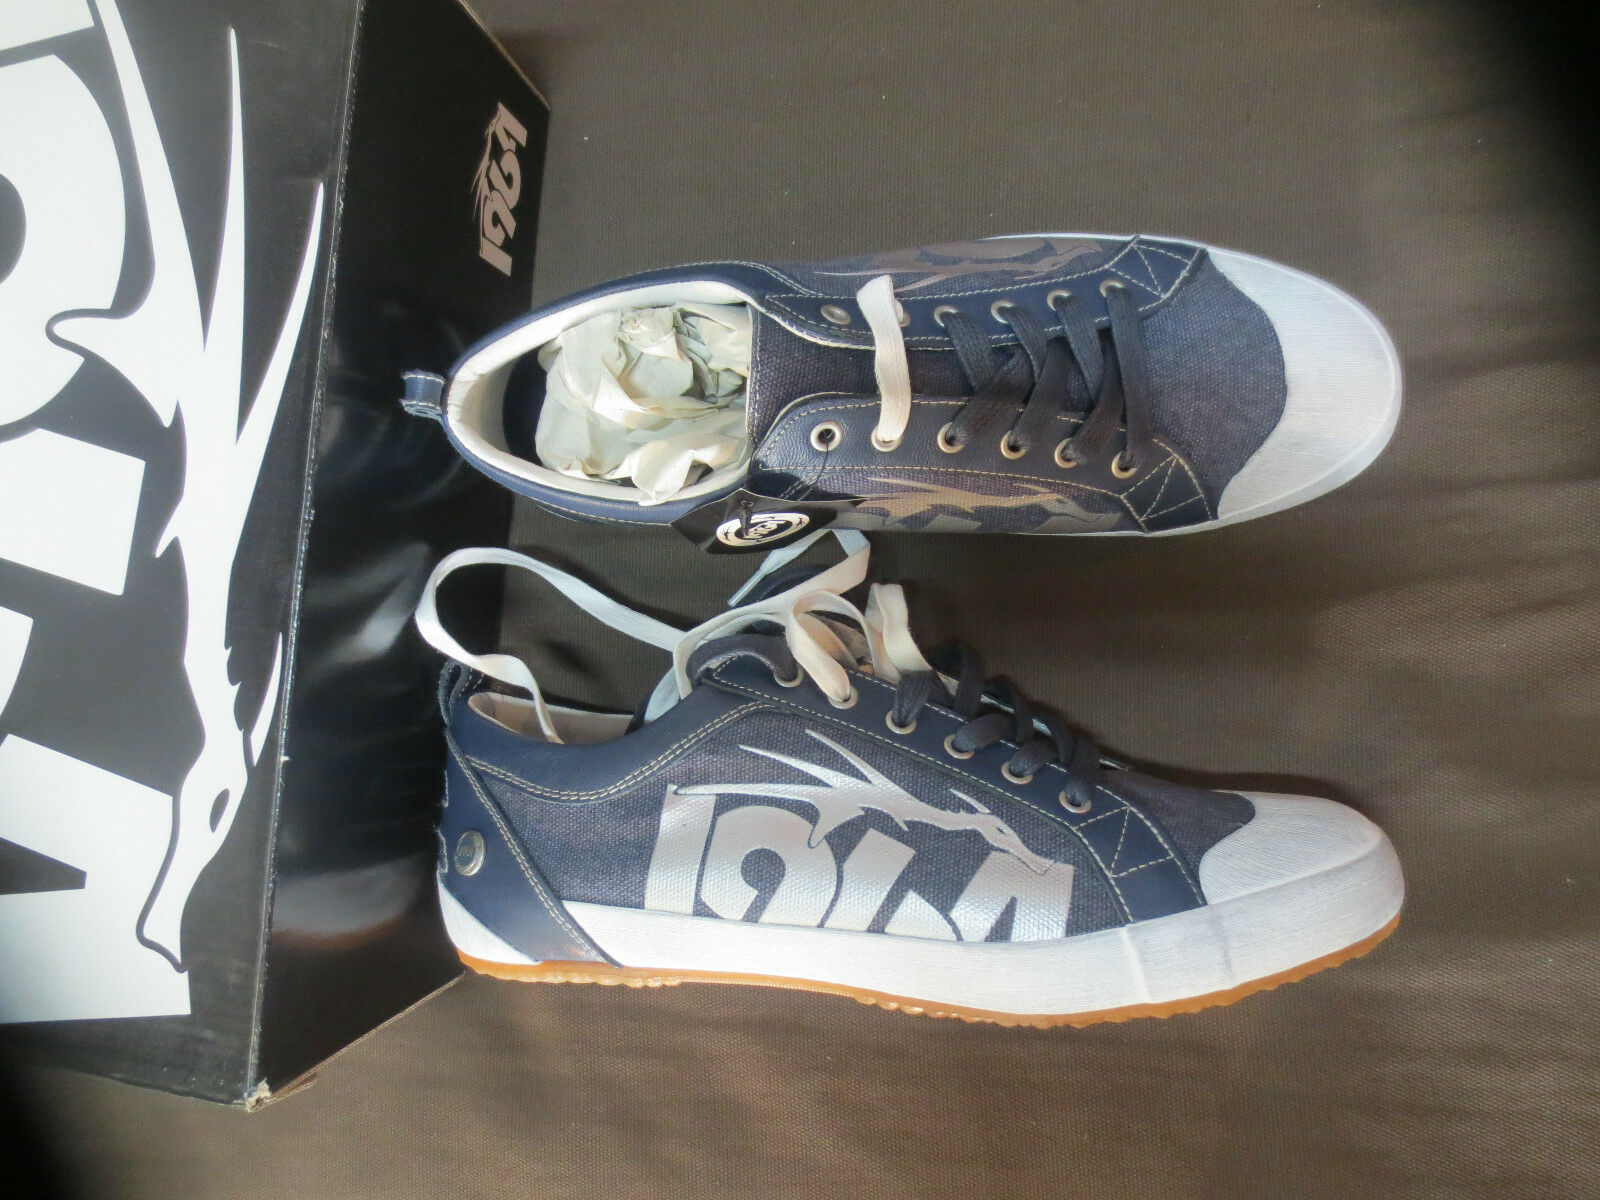 Man sneakers new value 69TH canvas+leather Navy Sizes 39,40,41,43,44